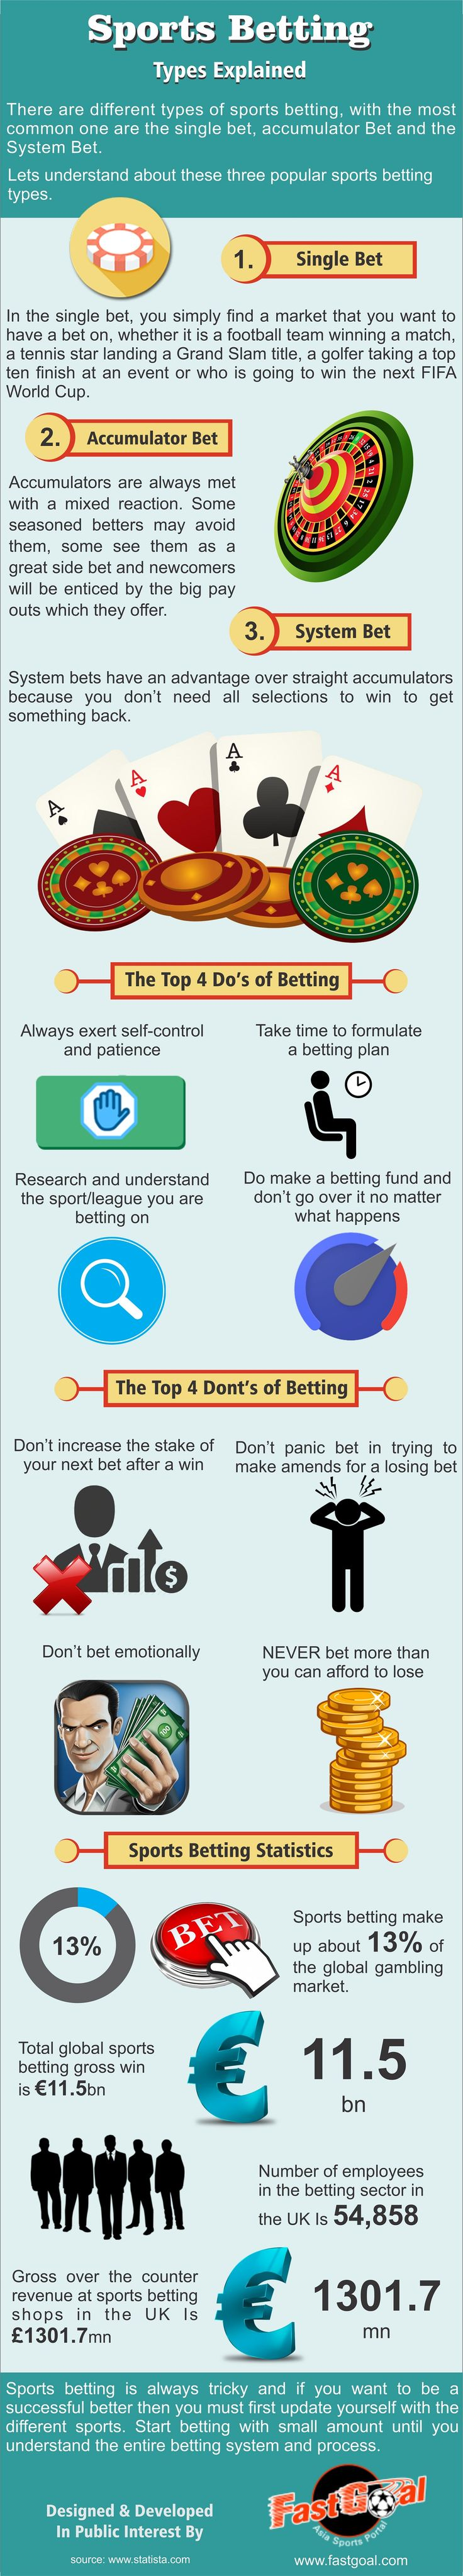 This infographic provide information on Sports Betting Types Explained. For more info please visit: http://fastgoal.com